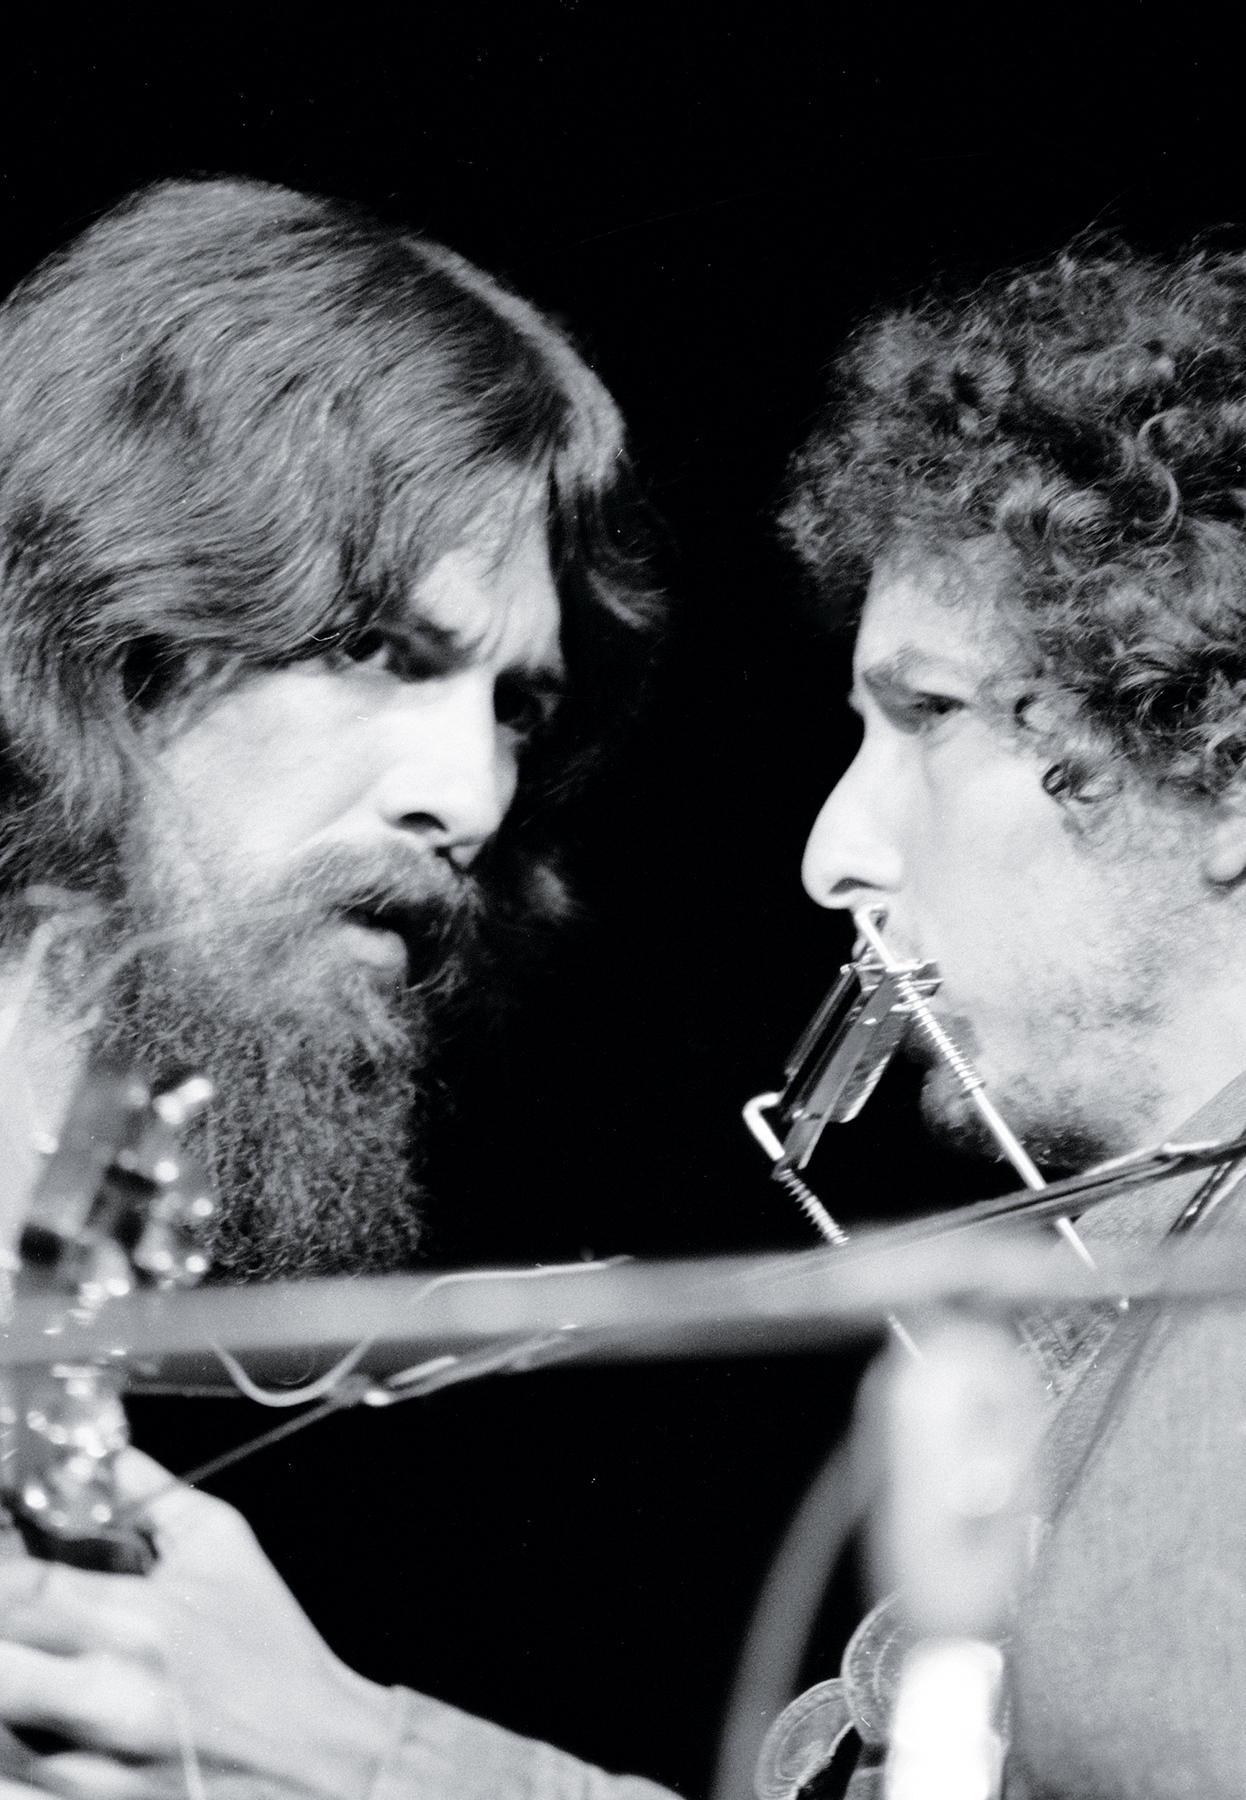 British musician George Harrison (1943 - 2001) (left) and American musician Bob Dylan performs on stage during the Concert For Bangla Desh at Madison Square Garden, New York, New York, August 1, 1971. Harrison organized the event as a benefit to the Bengali people left homeless by war. (Photo by Bill Ray/The LIFE Picture Collection via Getty Images)